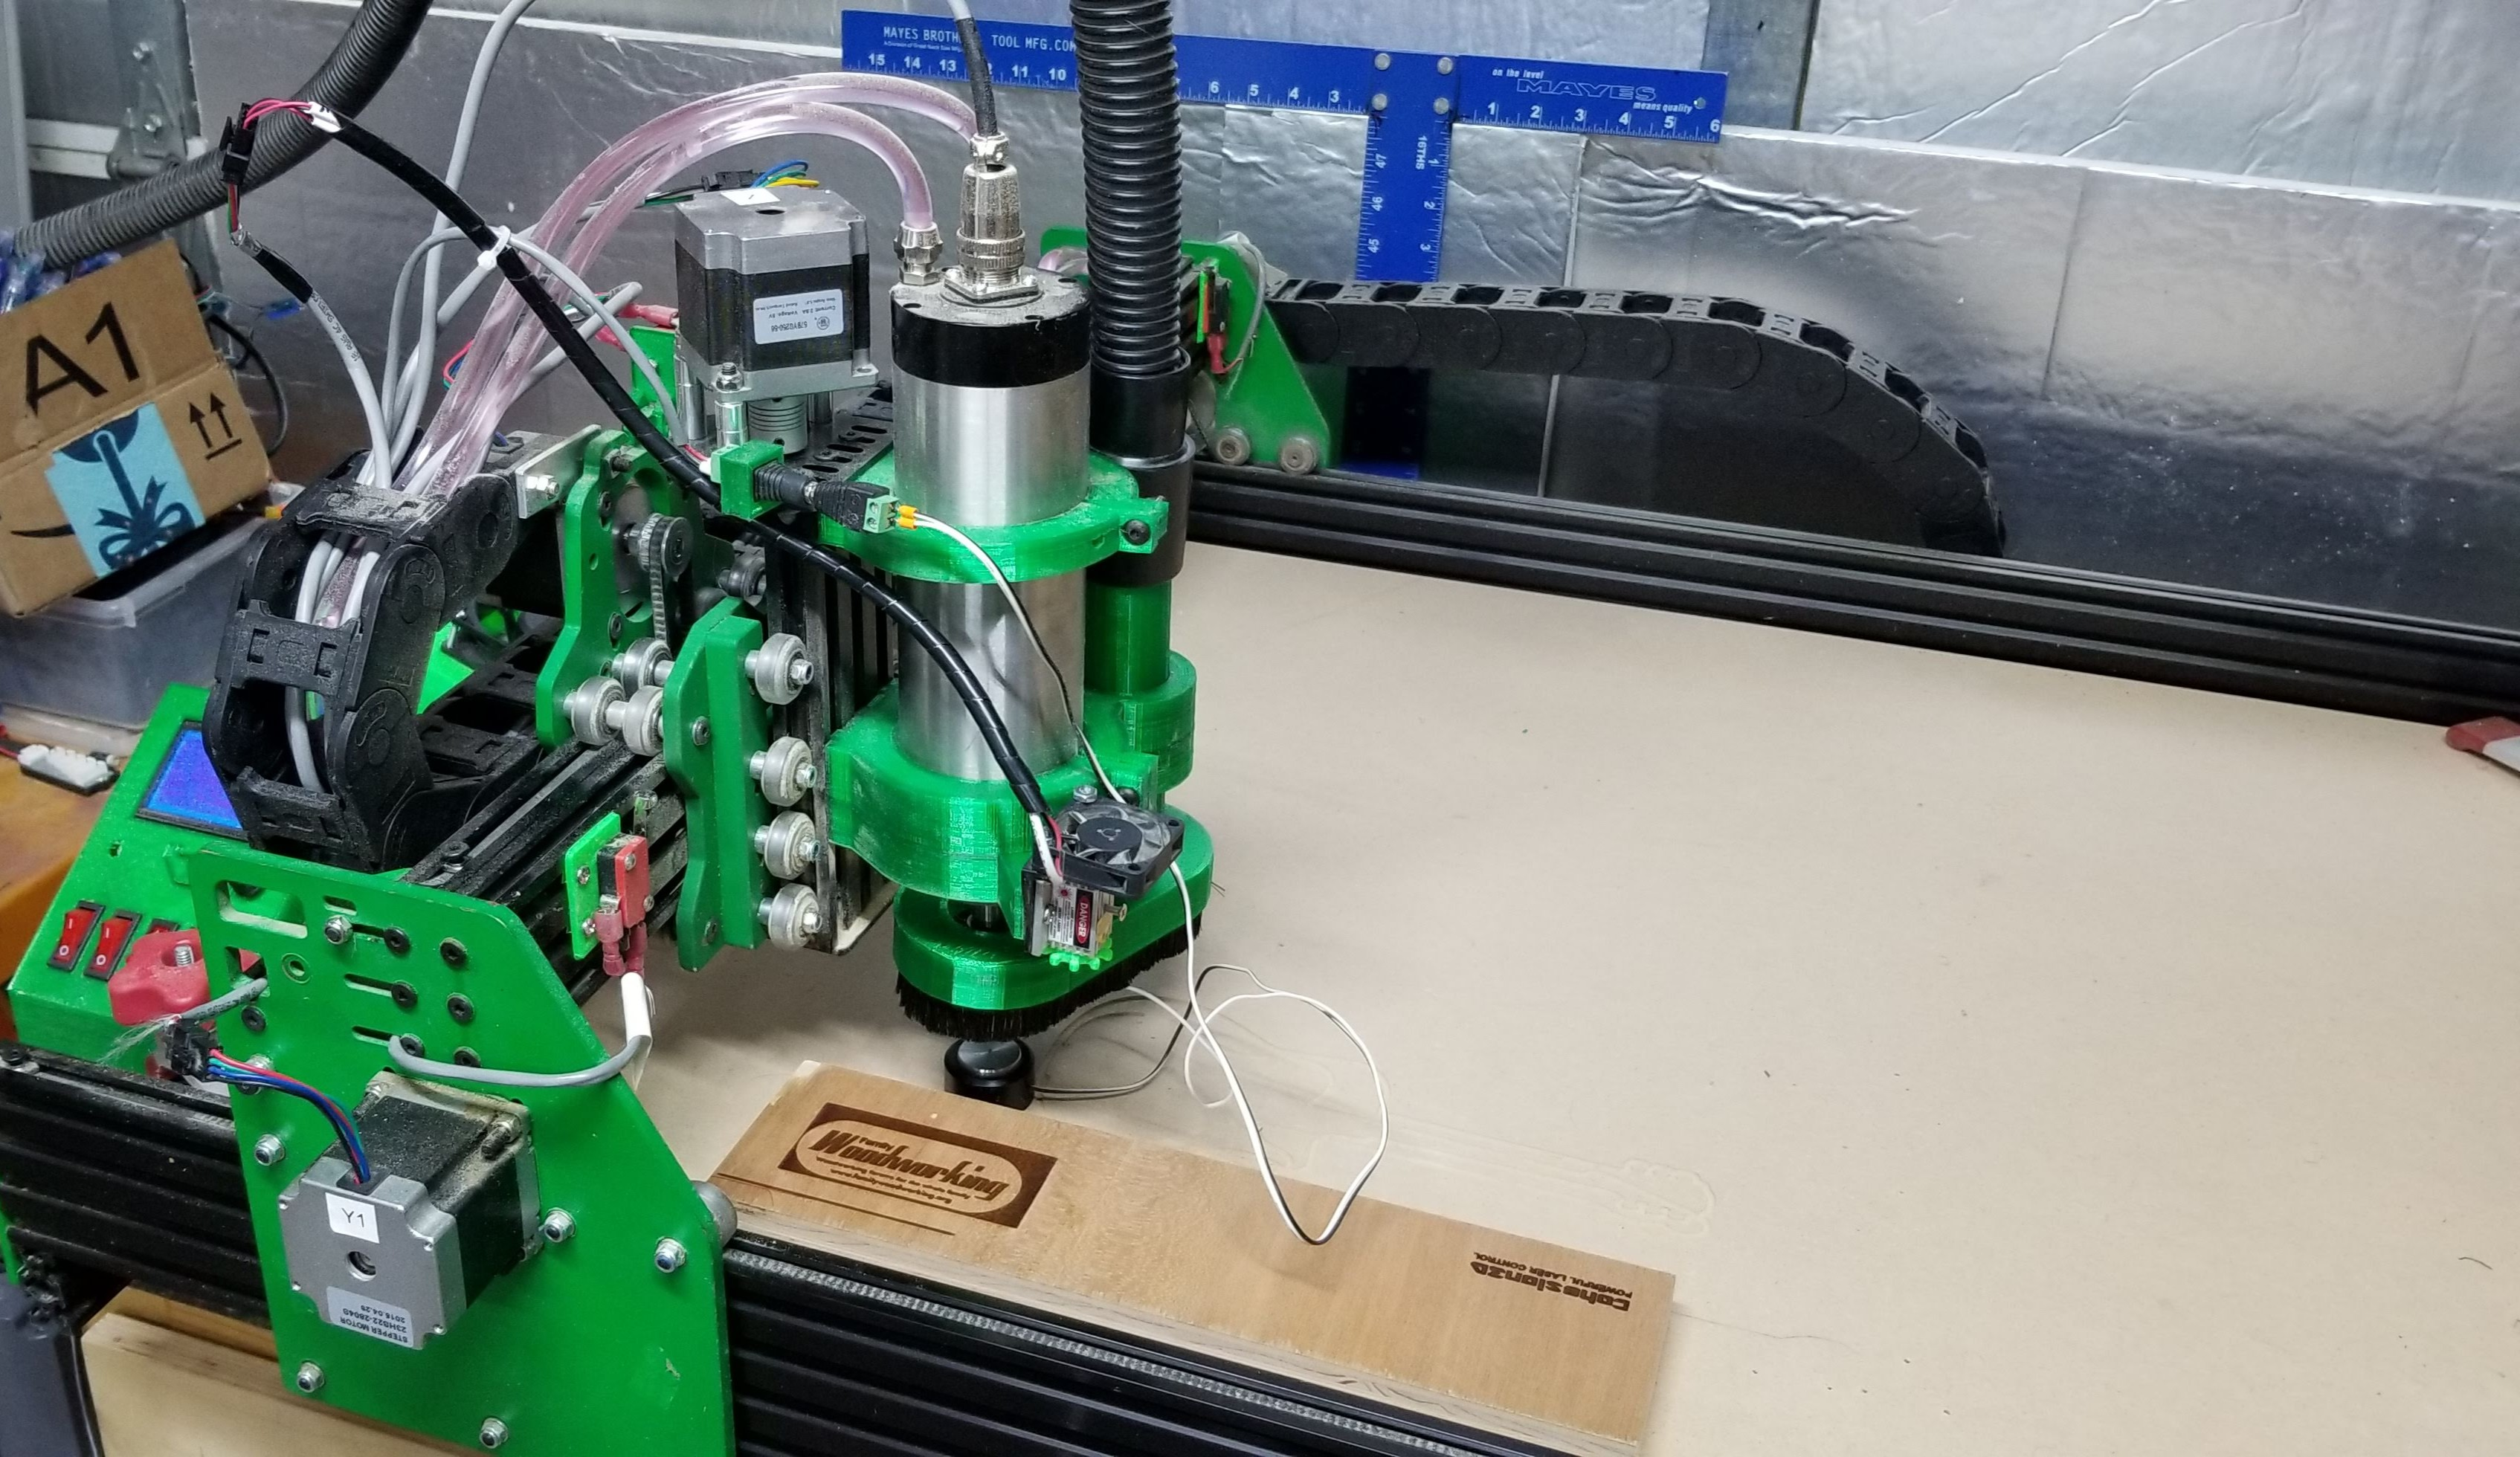 C3D Controlled CNC with Jtech Laser - Show & Tell: Machines